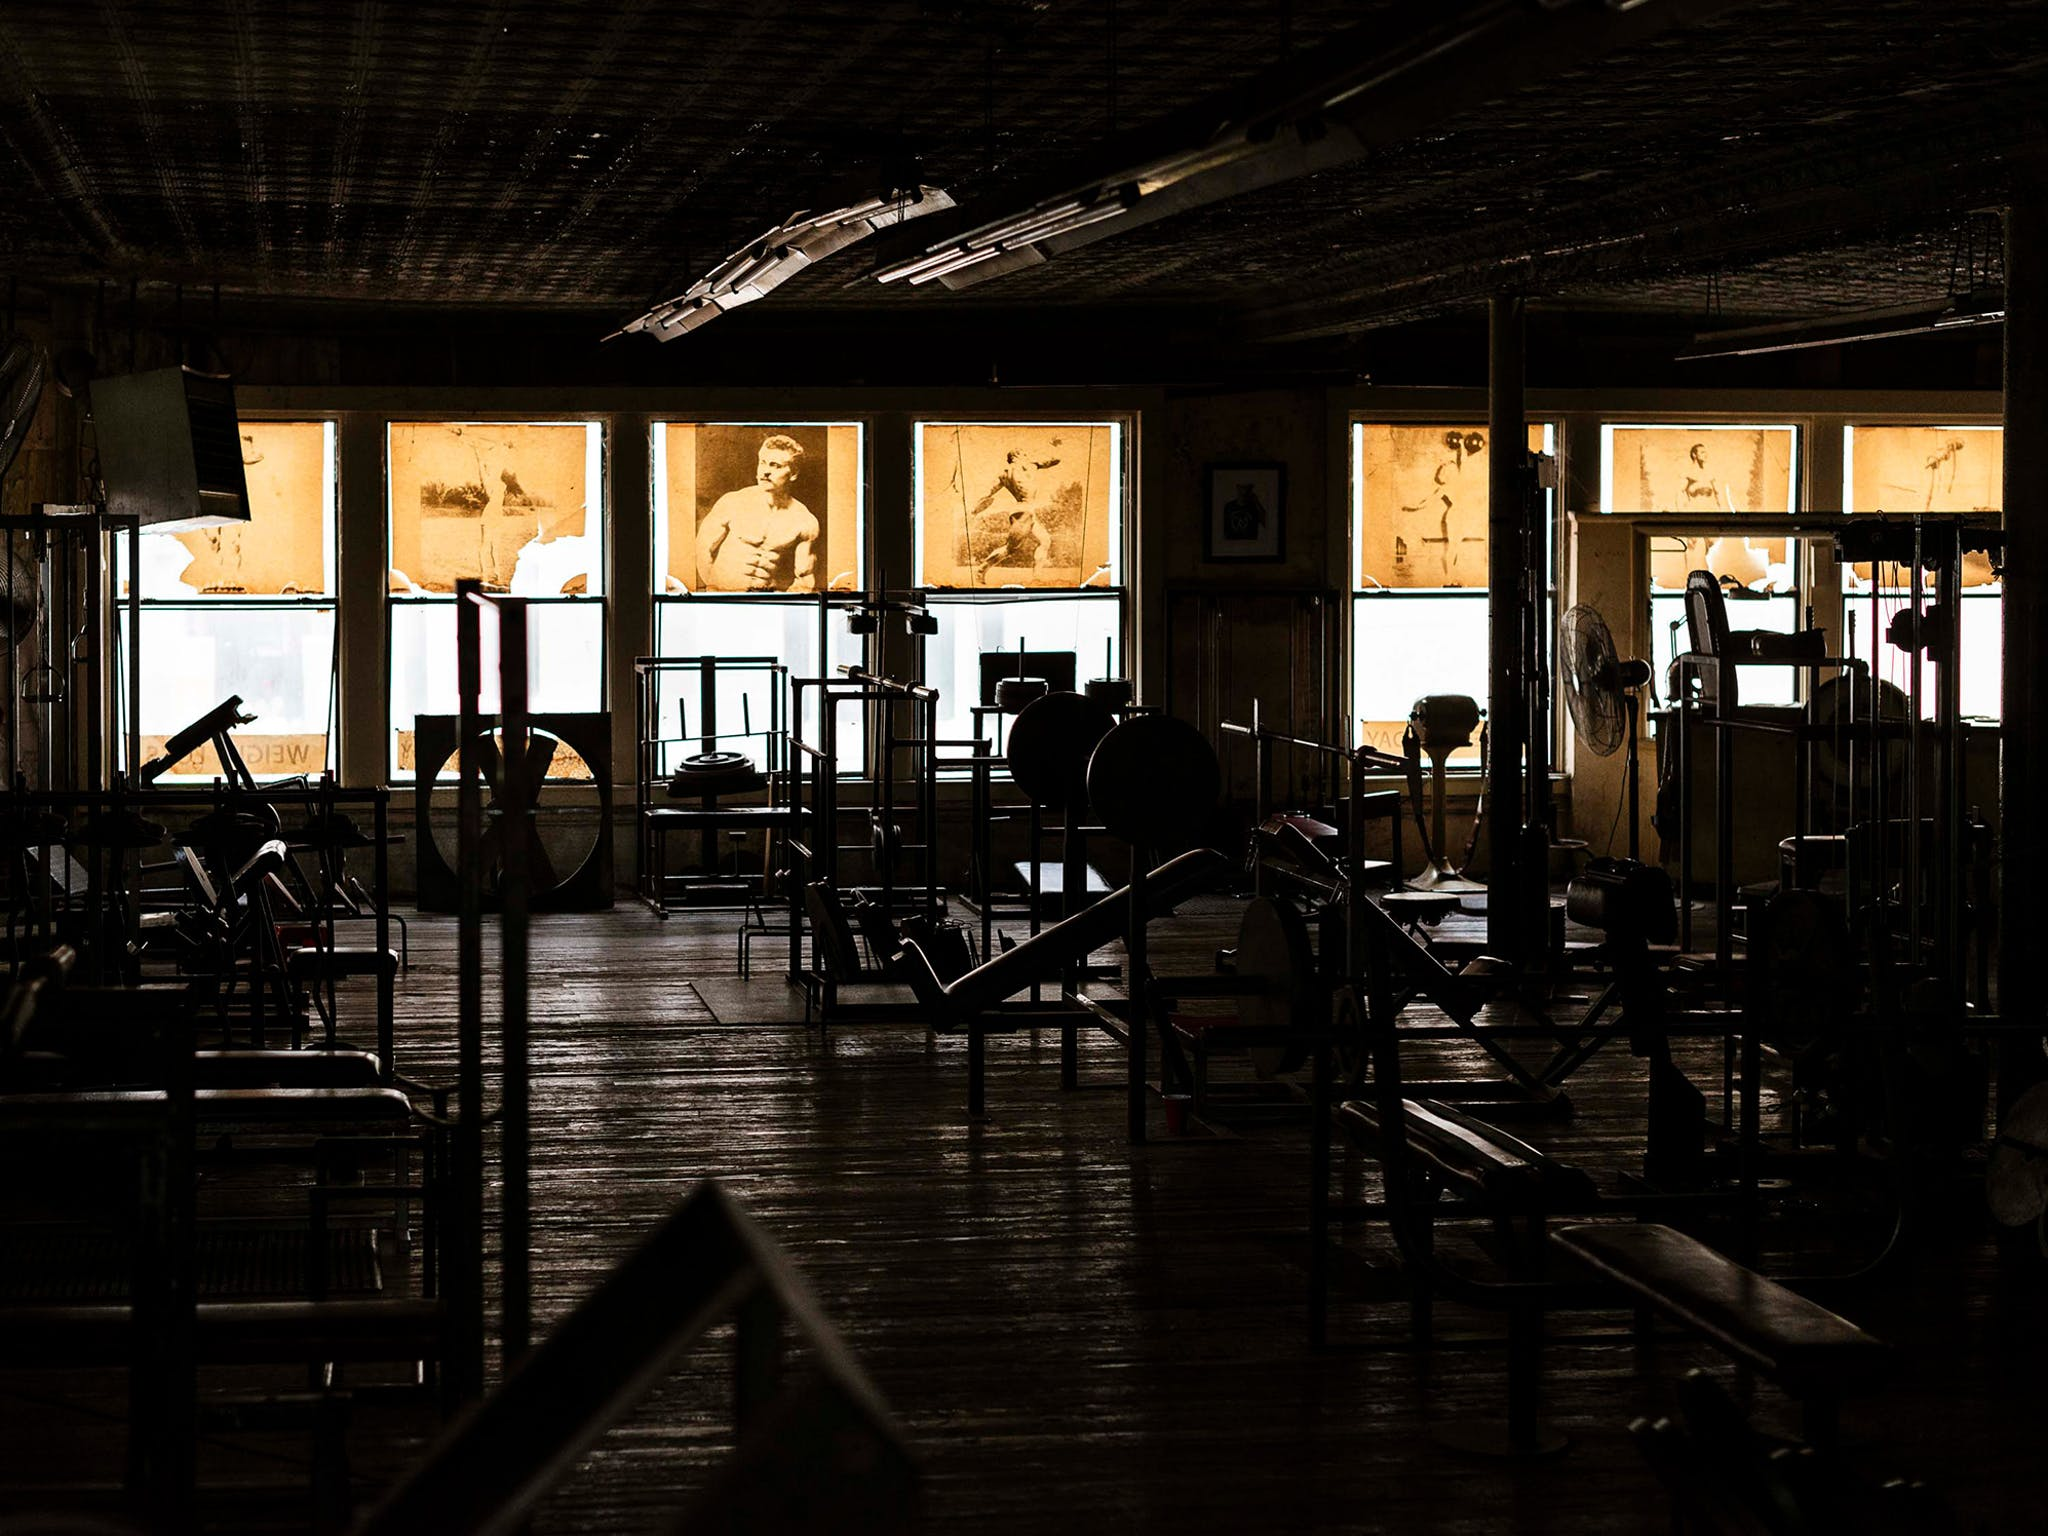 """Even during peak times, the gym rarely had more than 15 or 20 people in it, but when it was empty, it took on an entirely different mood. With the fluorescents off and the sun backlighting the yellowed posters that served as window treatments, you can make out the rough flooring (""""you wouldn't walk on that with bare feet,"""" says Diamond), the almost architectural silhouettes of the equipment, and two fans. Barely visible in the far right window: a vintage vibrating belt once considered a state-of-the-art fat-reducing device."""